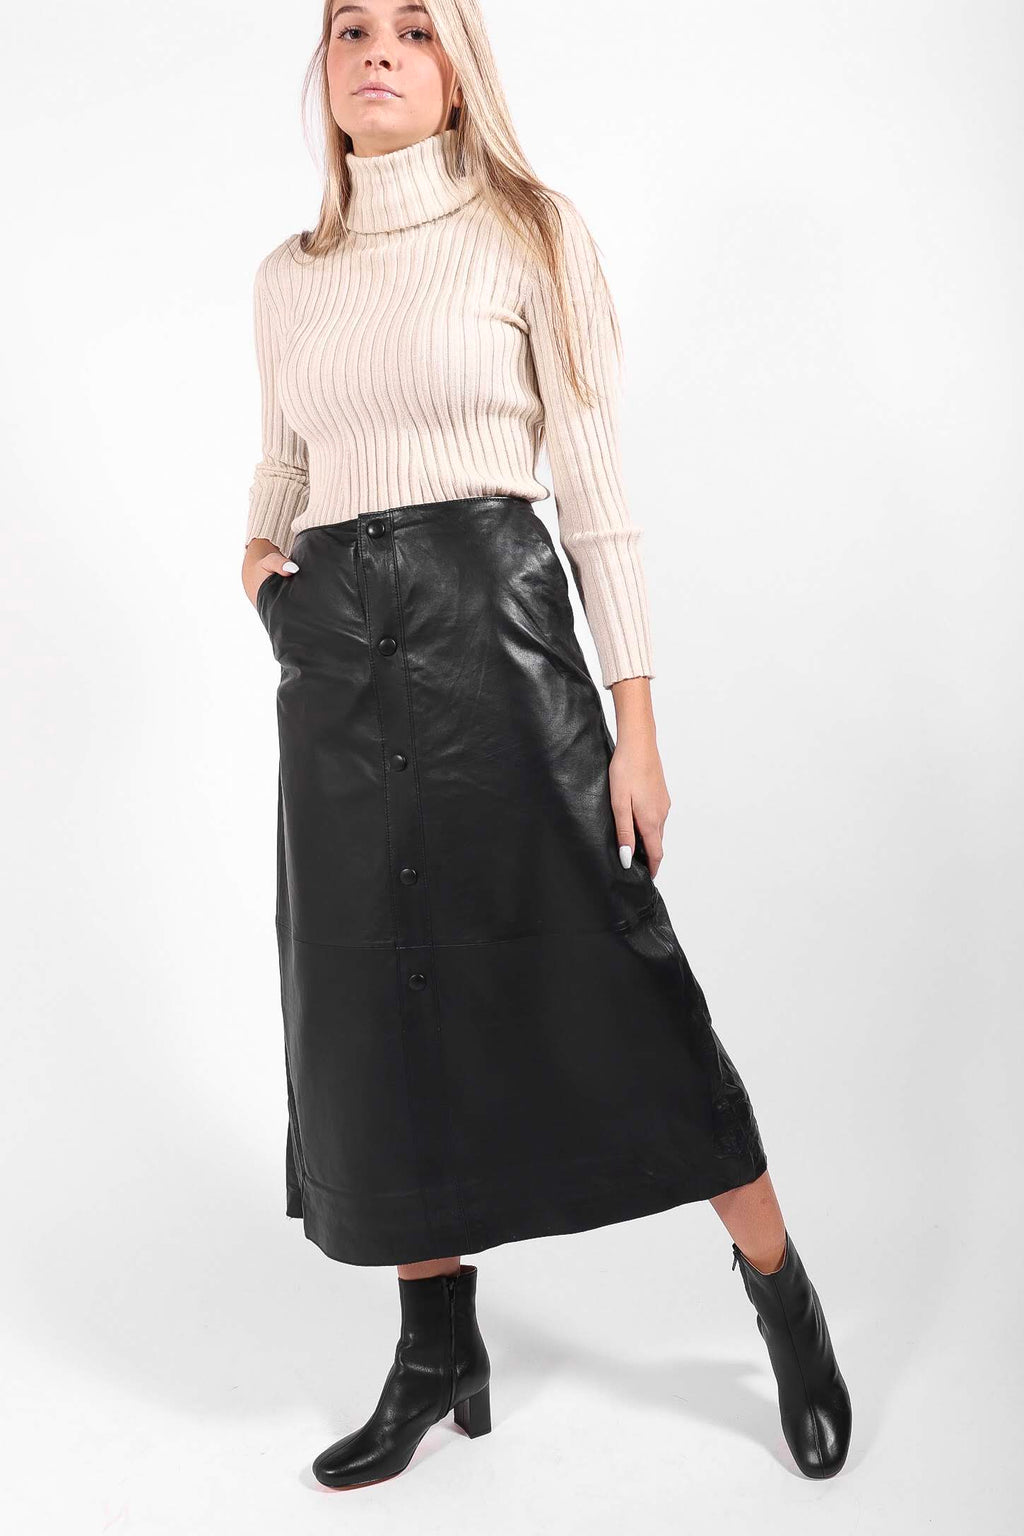 Stand Studio - Nata Skirt (Black)